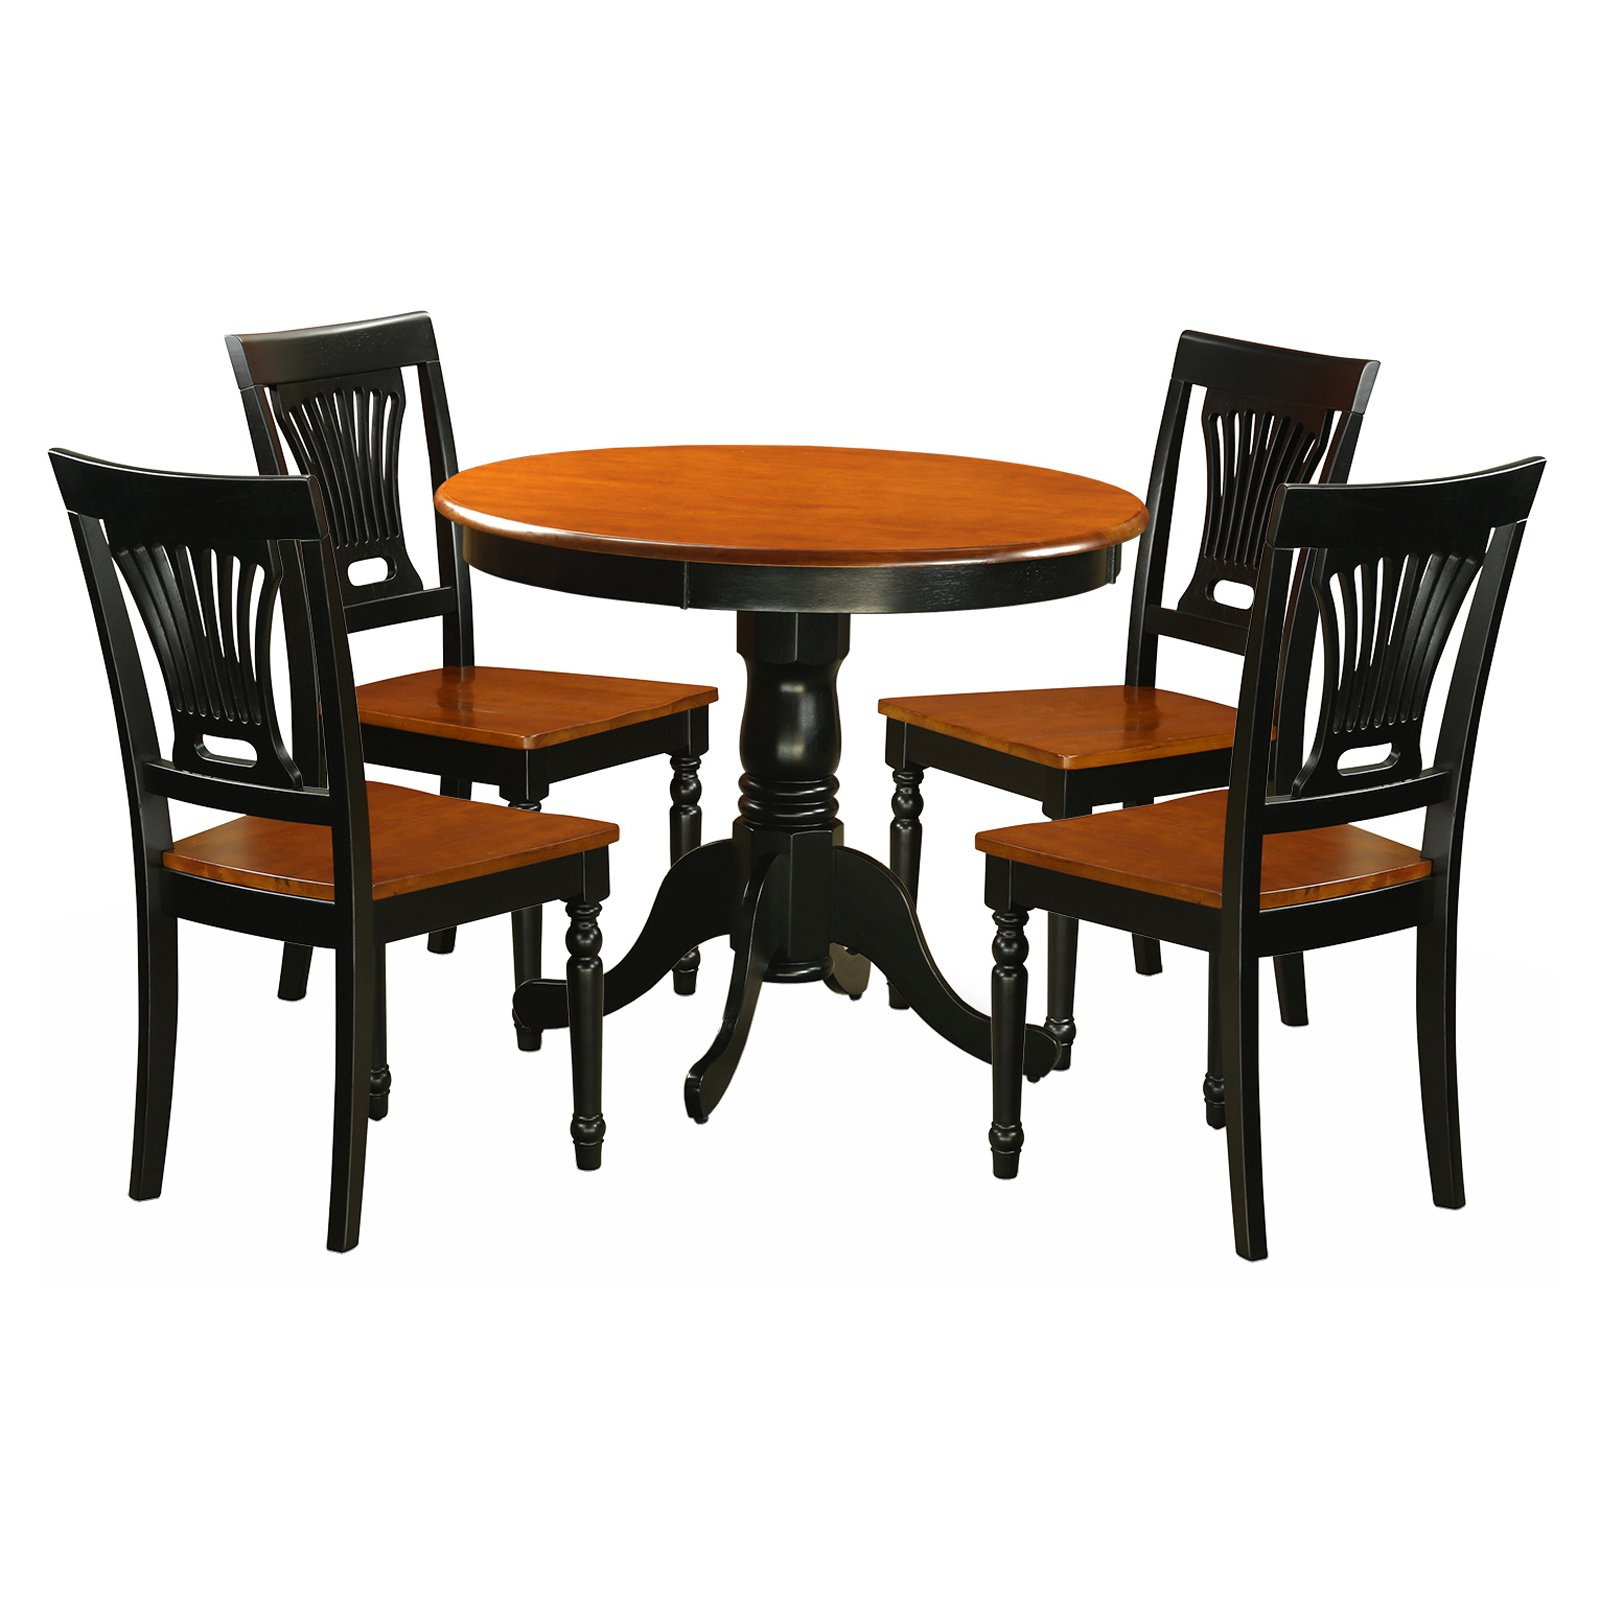 East West Furniture Antique 5 Piece Pedestal Round Dining Table Set with Plainville Wooden Seat Chairs